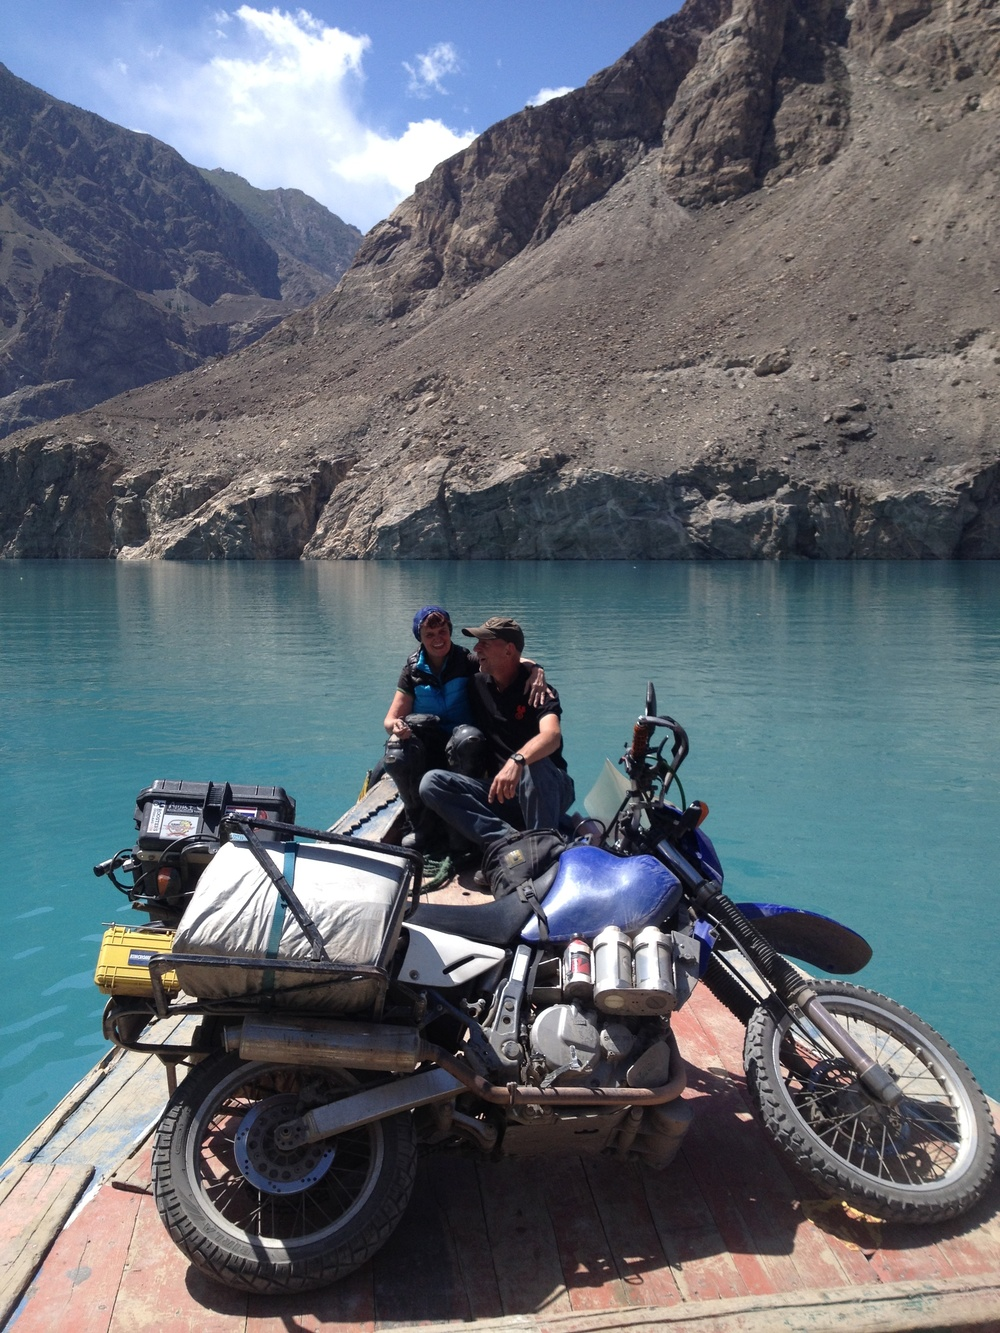 Crossing Attabad Lake, North Pakistan